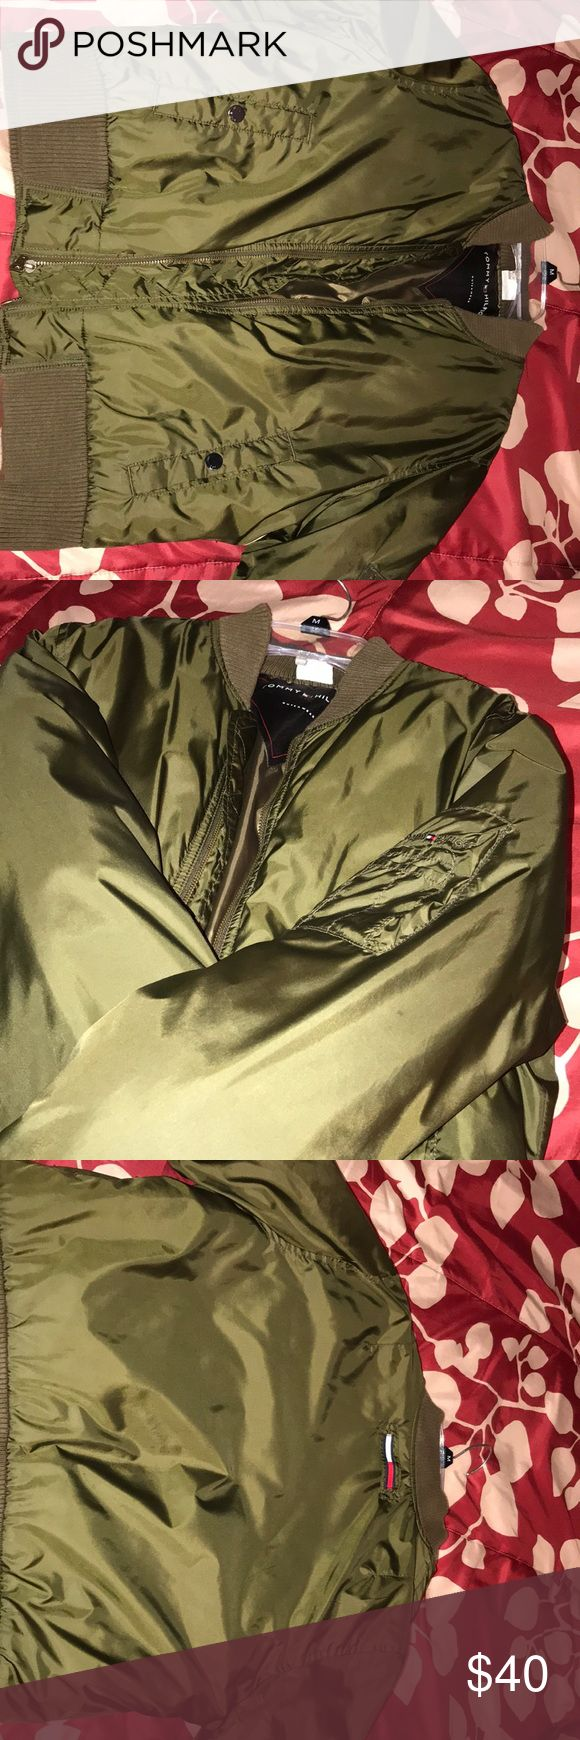 Tommy Hilfiger Bomber jacket Army green Tommy Hilfiger bomber jacket in size Medium, good condition. Tommy Hilfiger Jackets & Coats Puffers